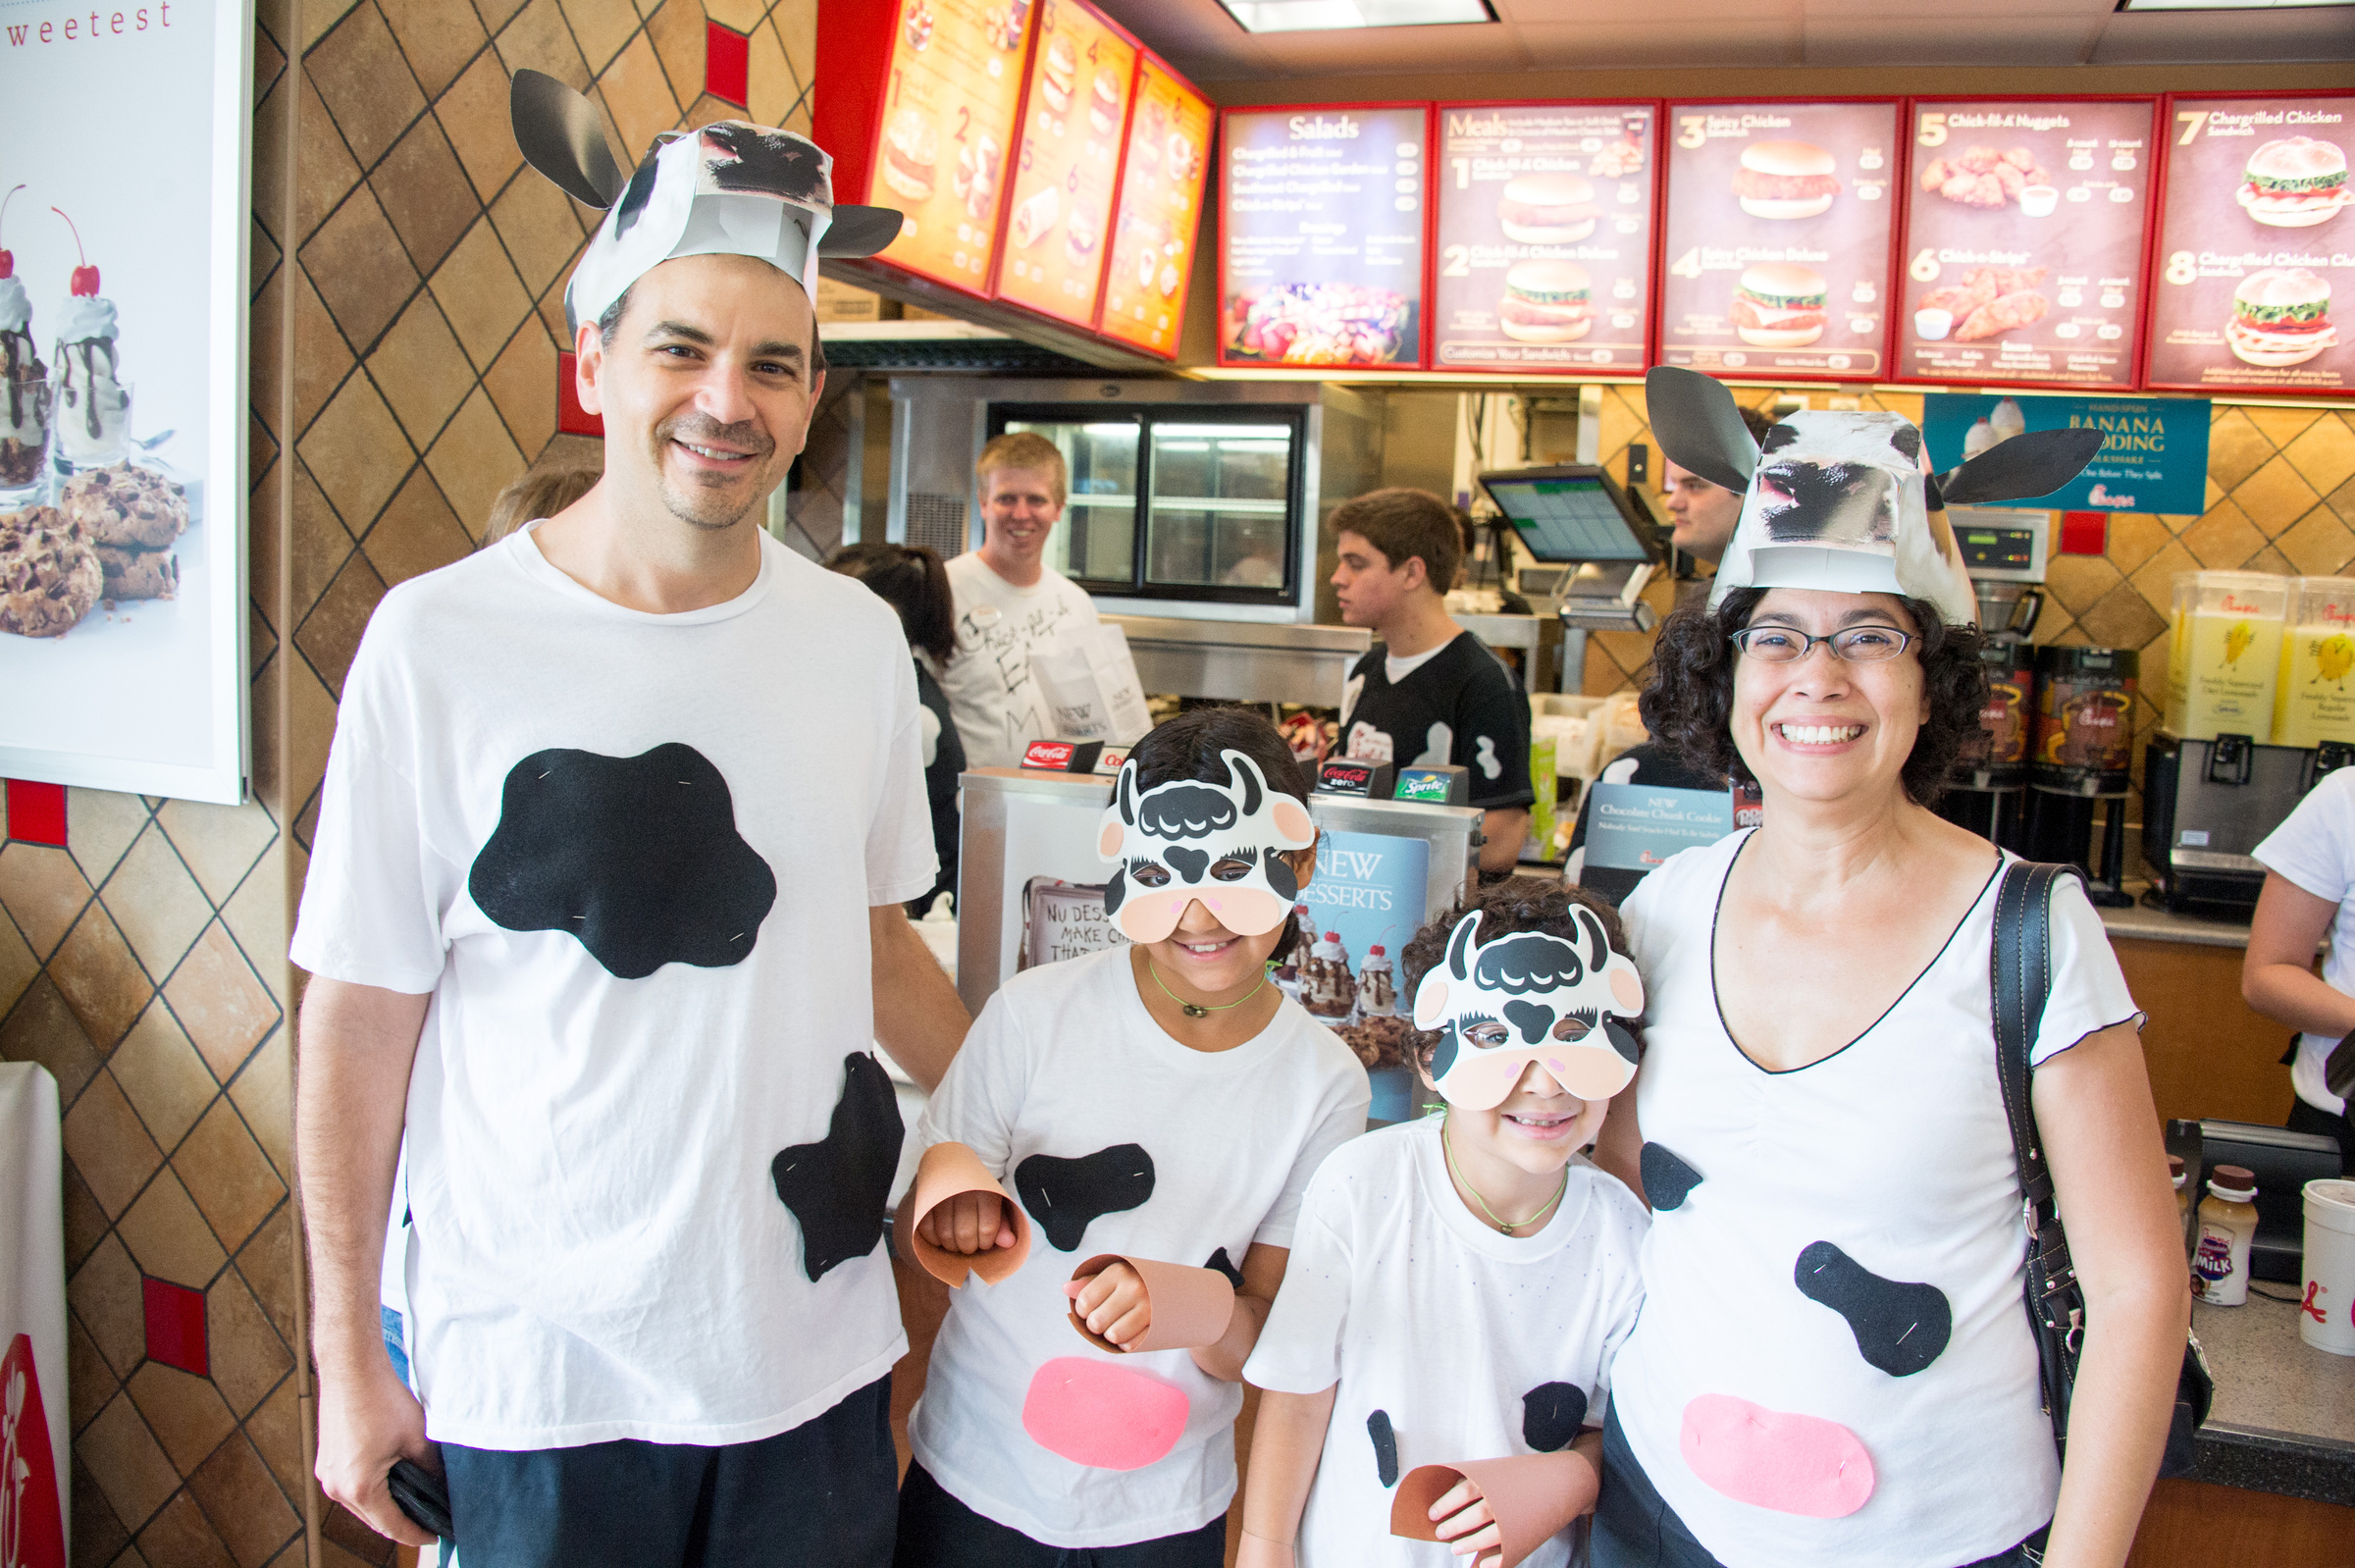 Customers dressed up for cow appreciation day